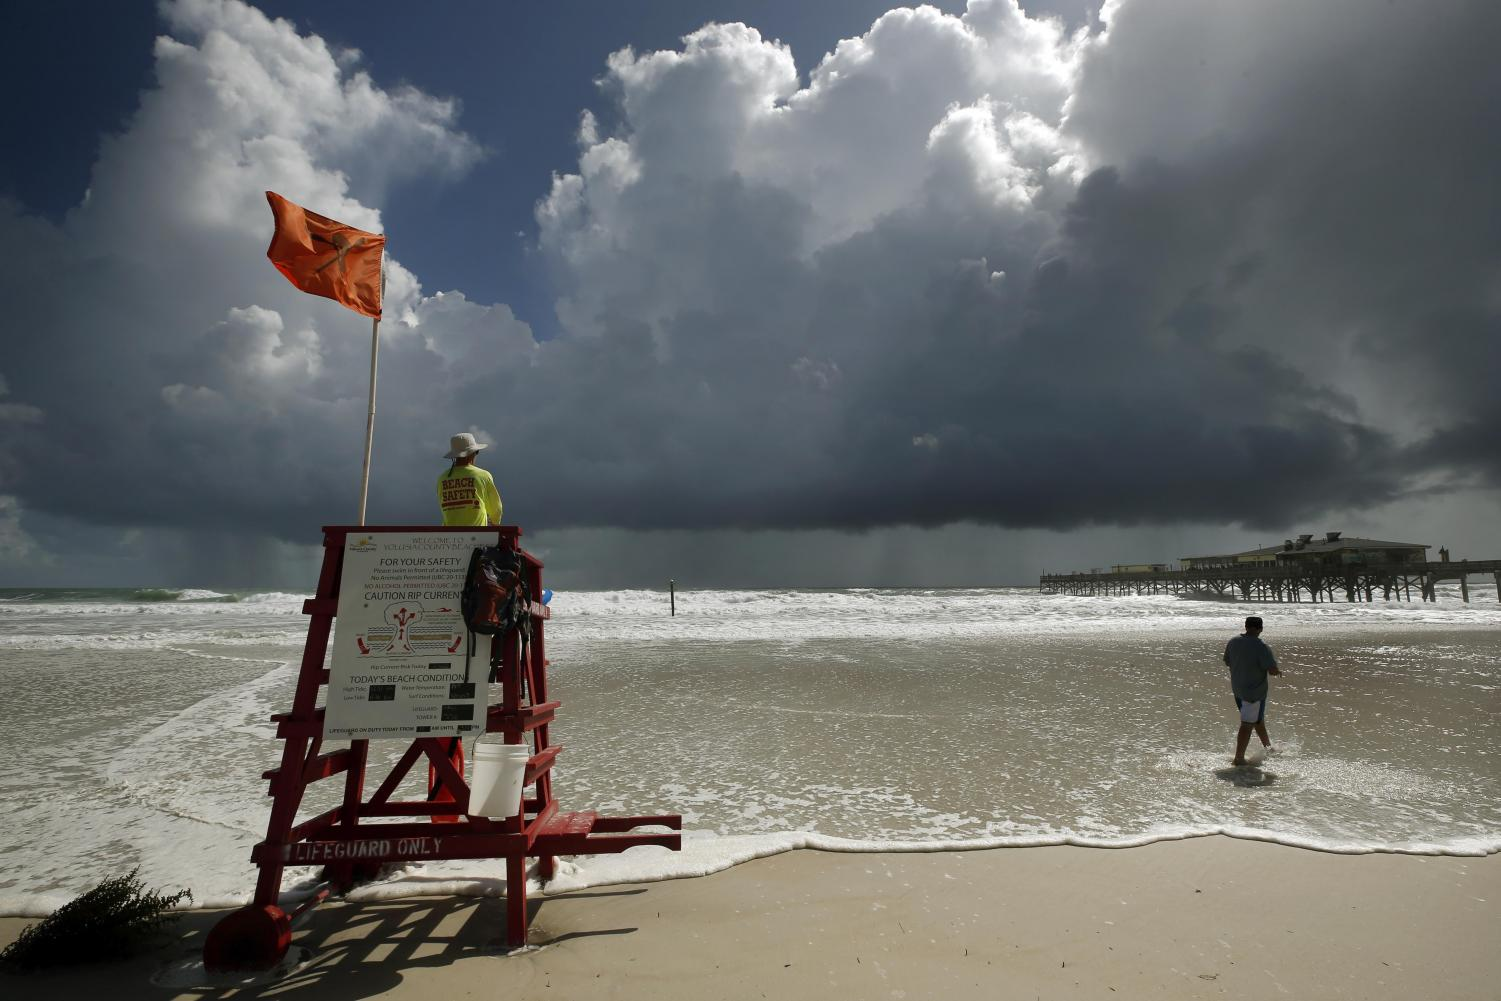 By Sunday, the pre-hurricane seas got rough, but there were still wave watchers ahead of the evacuation in Daytona Beach Shores. [News-Journal/Nigel Cook]